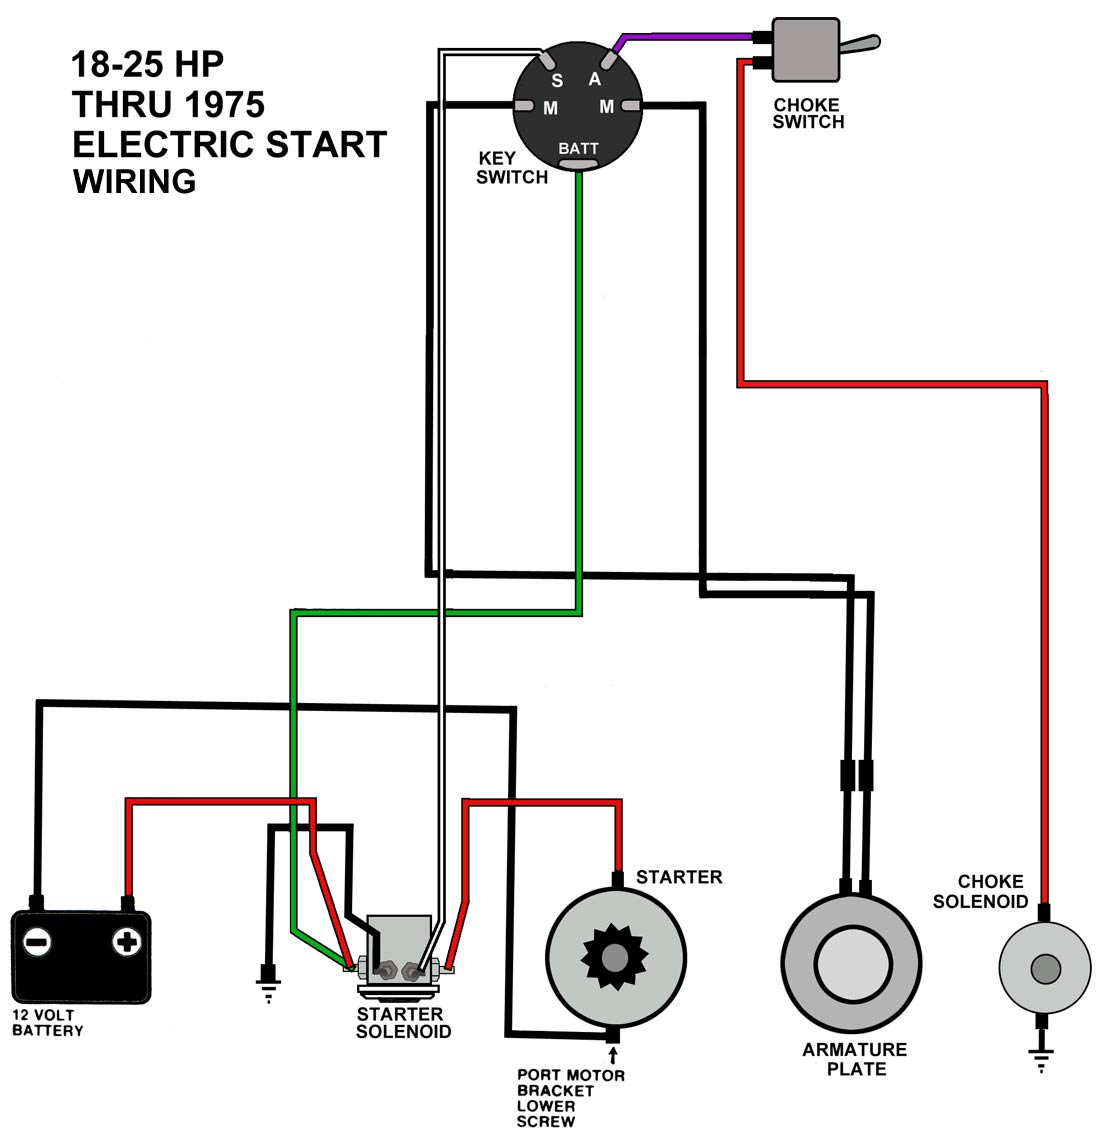 Omc Solenoid Wiring Diagram | Wiring Diagram on valve key, honda key, body key, flywheel key, wiring a three way switch, wiring diagrams for peterbilt trucks, tractor key, radiator key, ford key,